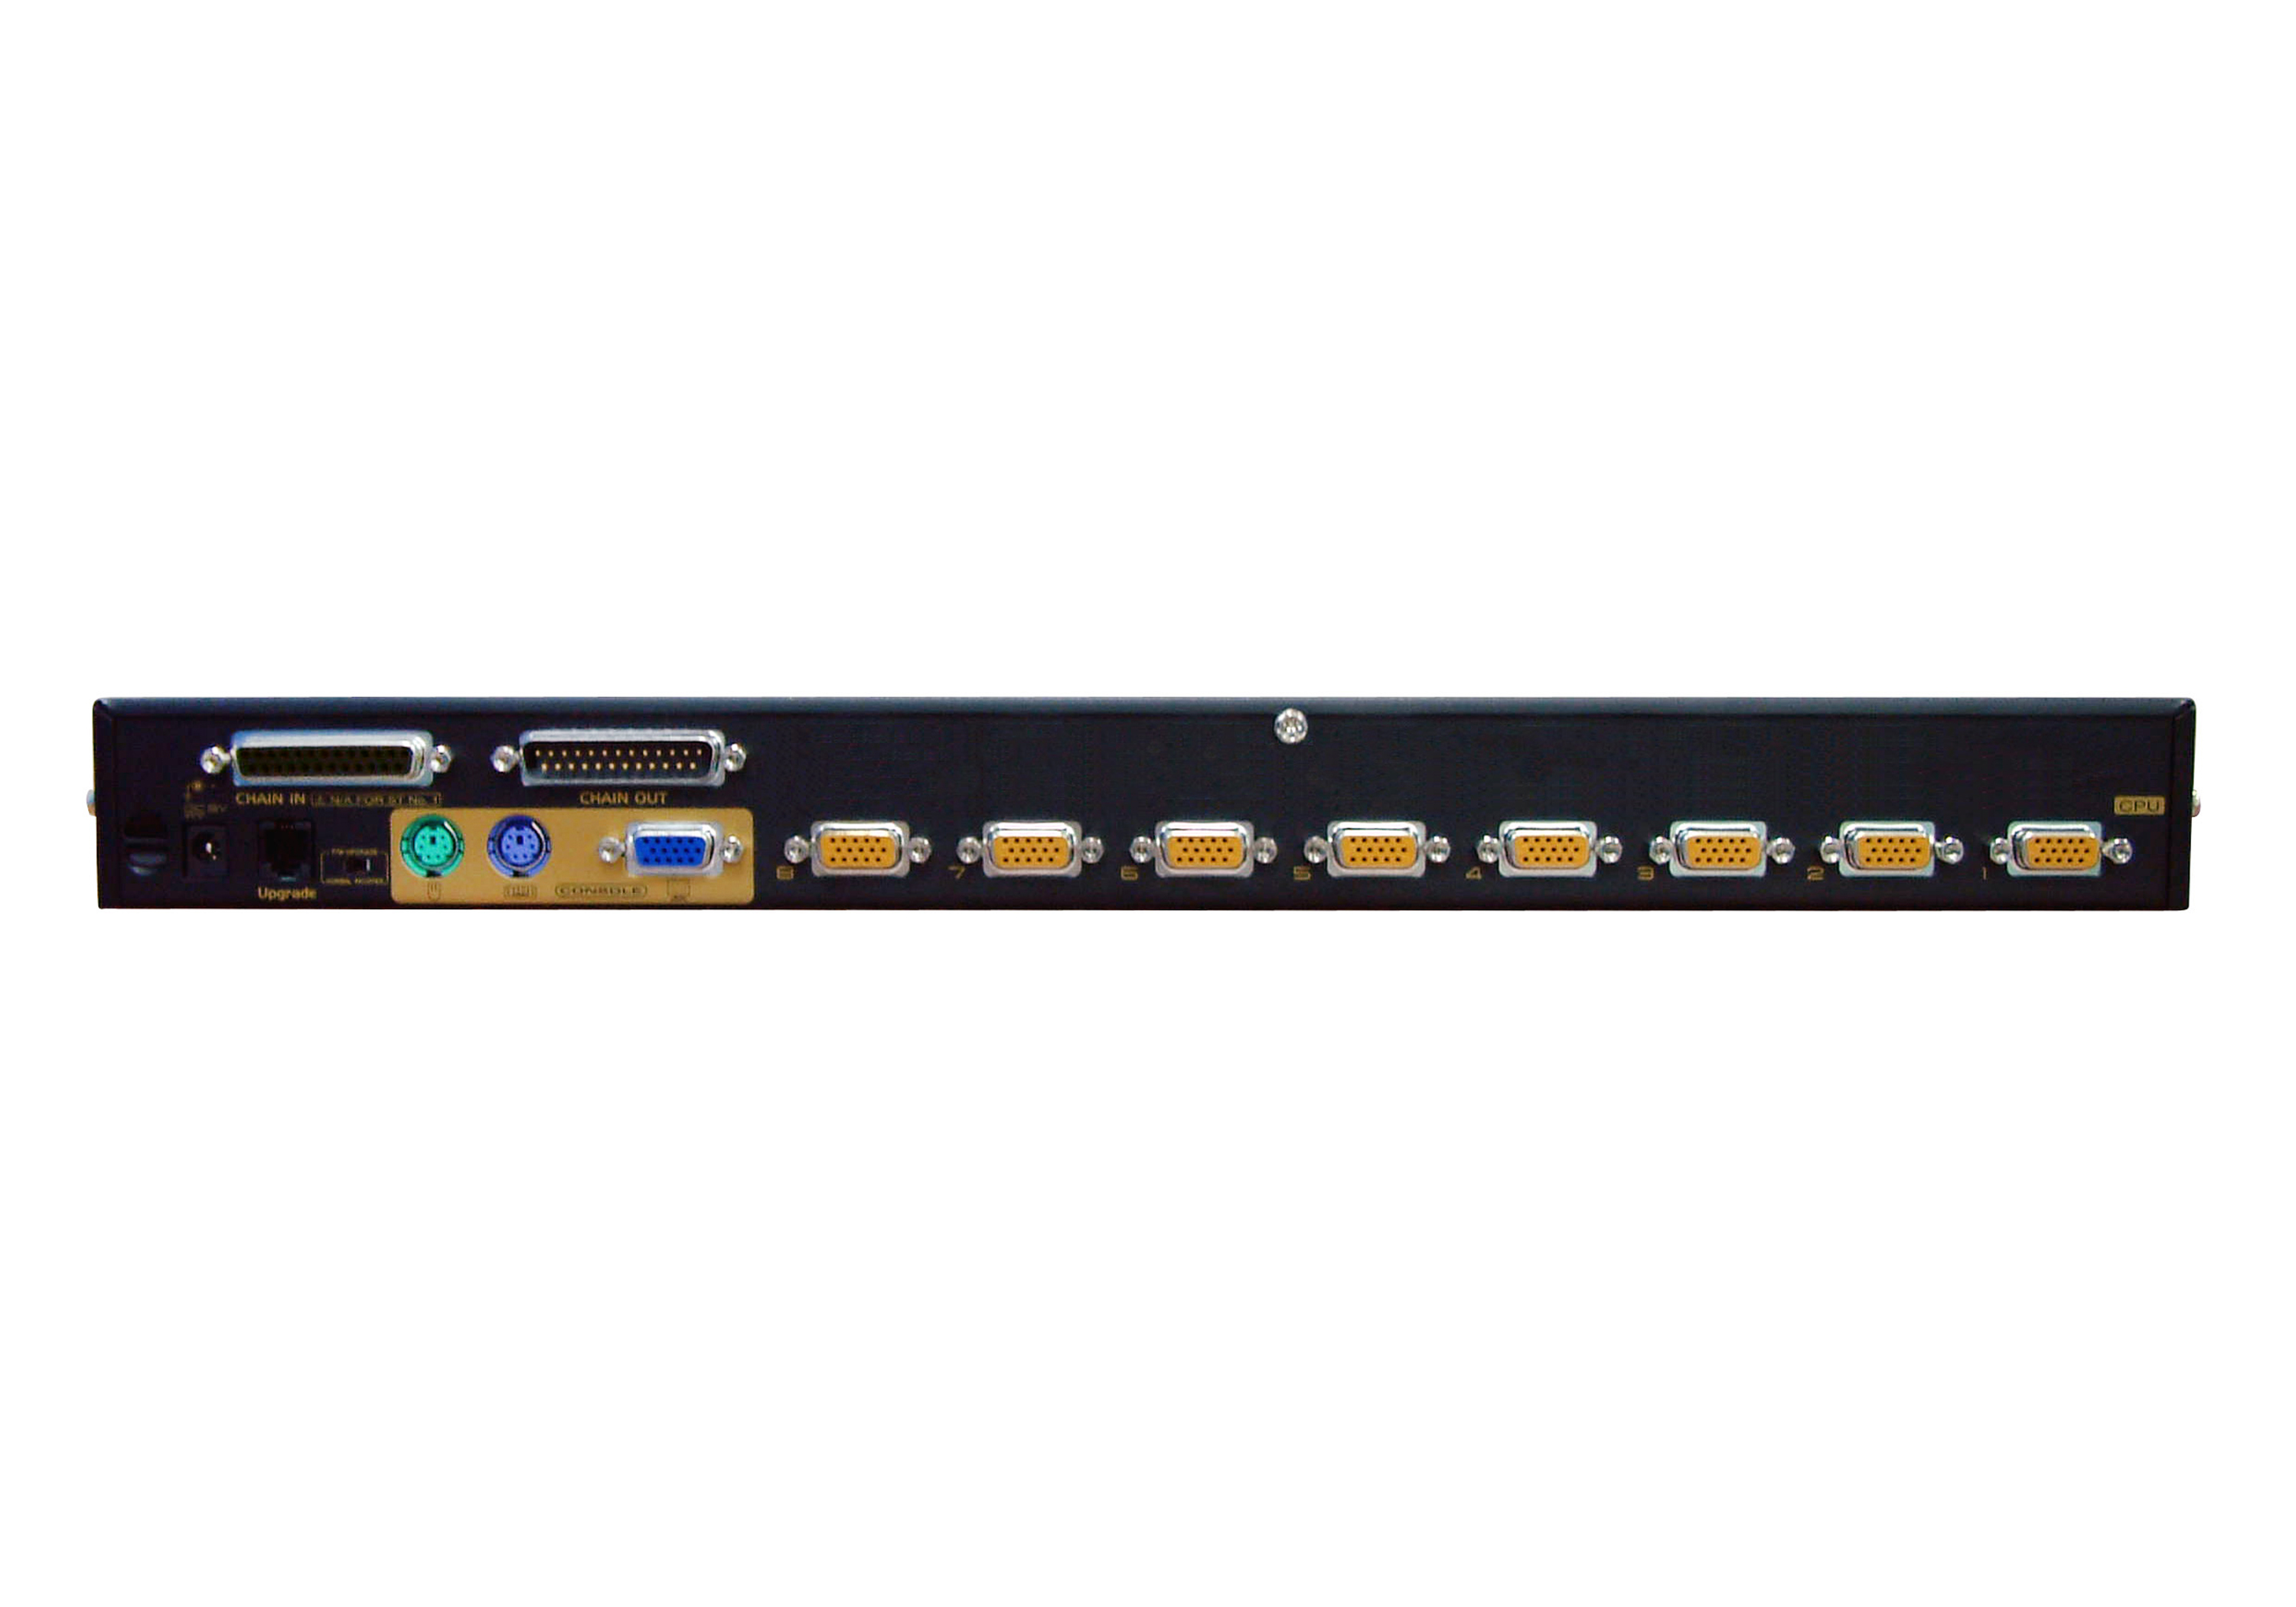 8-Port PS/2 VGA KVM Switch with Daisy-Chain Port-2